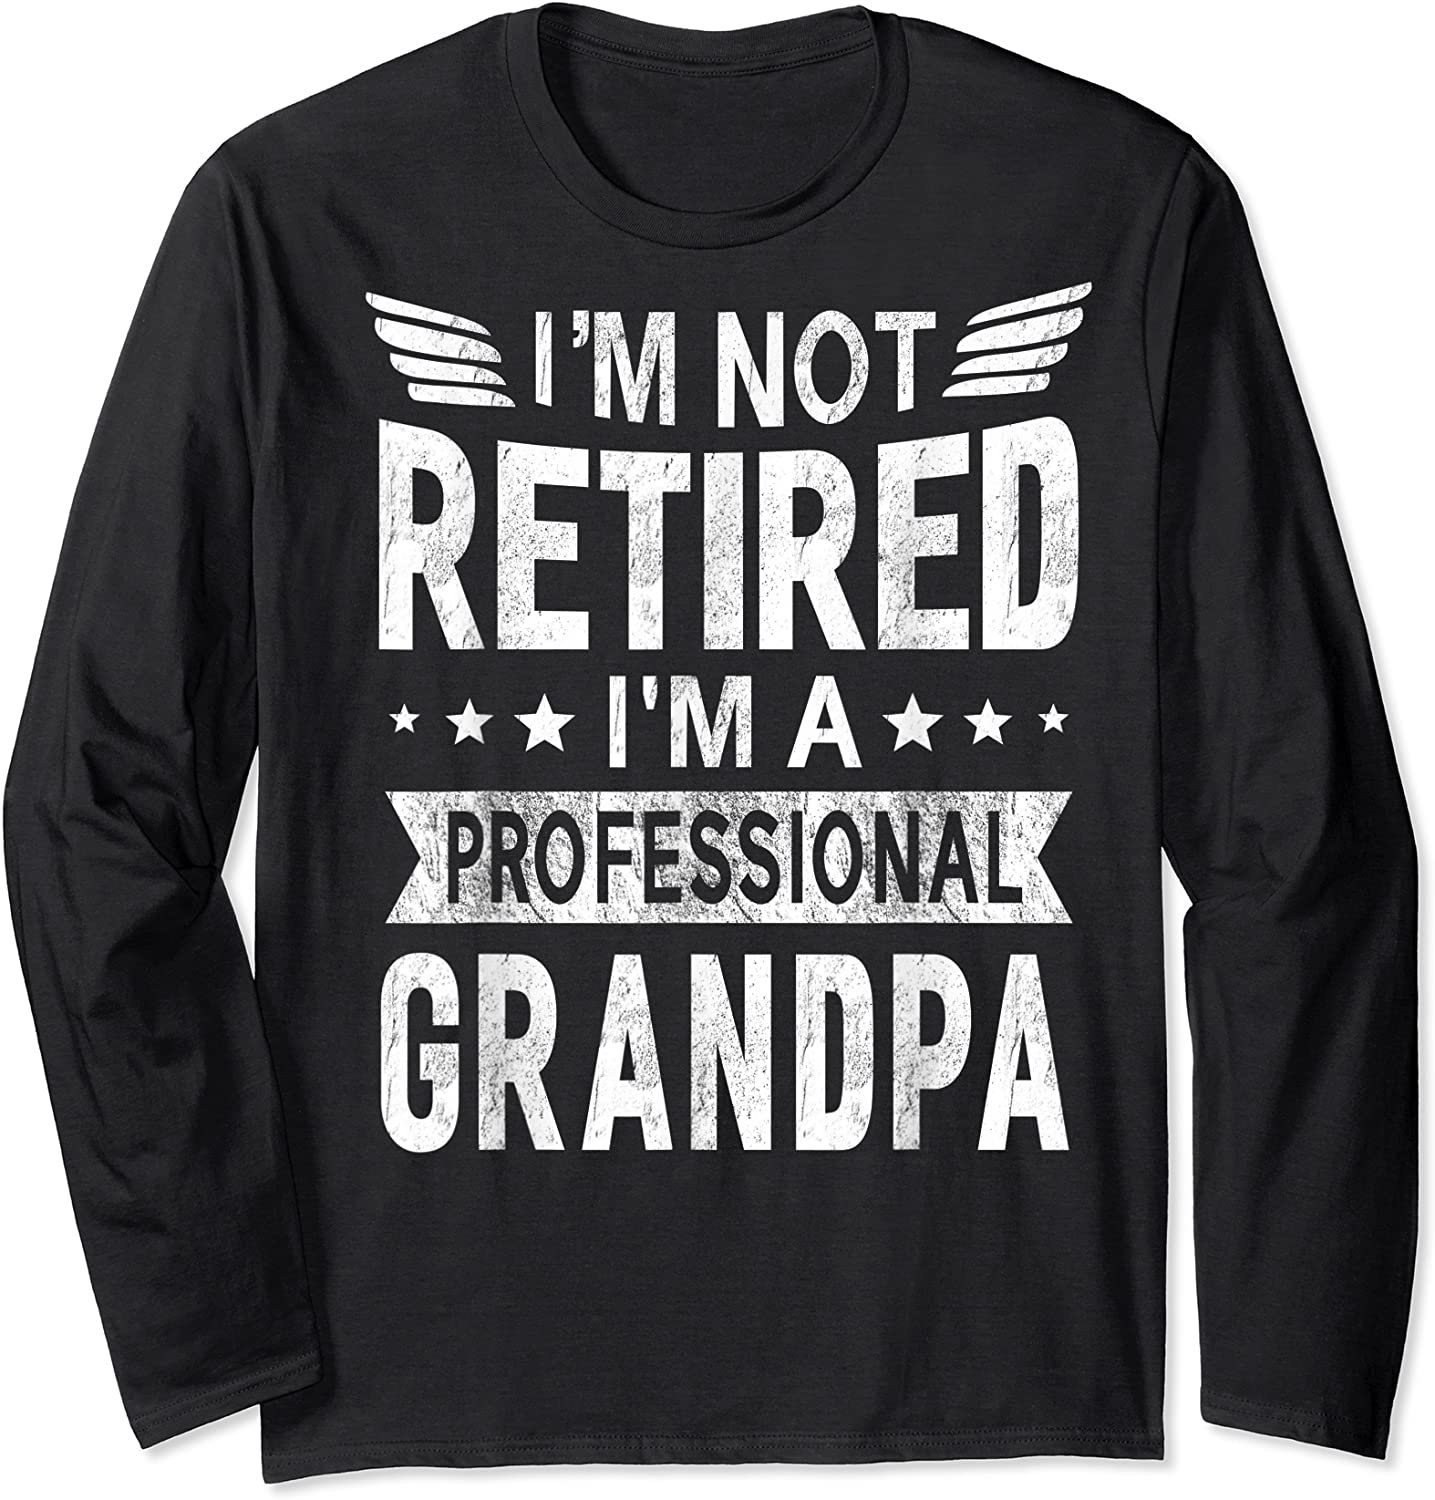 I'm Not Retired A Professional Grandpa Top Fathers Day Gift T-shirt Long Sleeve T-shirt